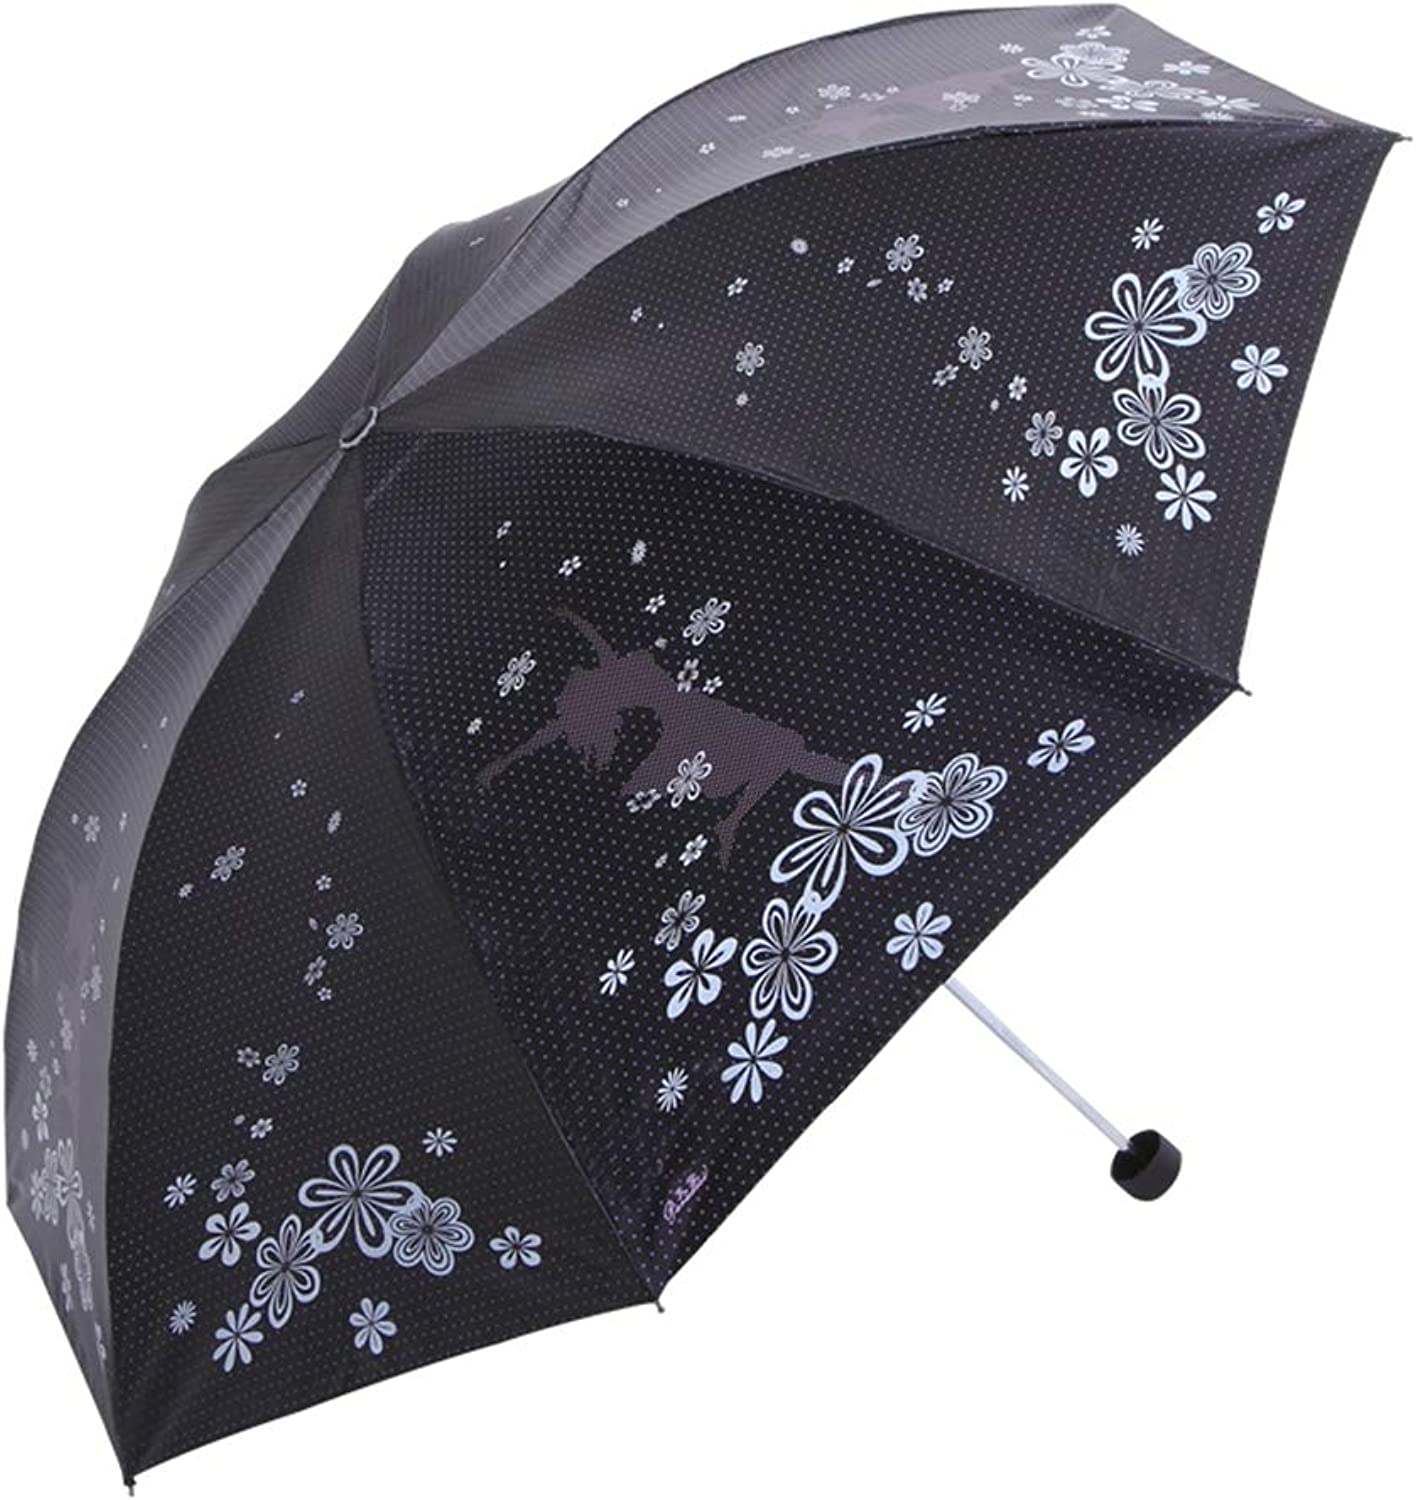 Travel Umbrella, New Fashion 3 Folding Umbrella Anti-UV Waterproof Portable Rain Umbrella Lightweight Compact Manual Sun Umbrellas for Women,Black